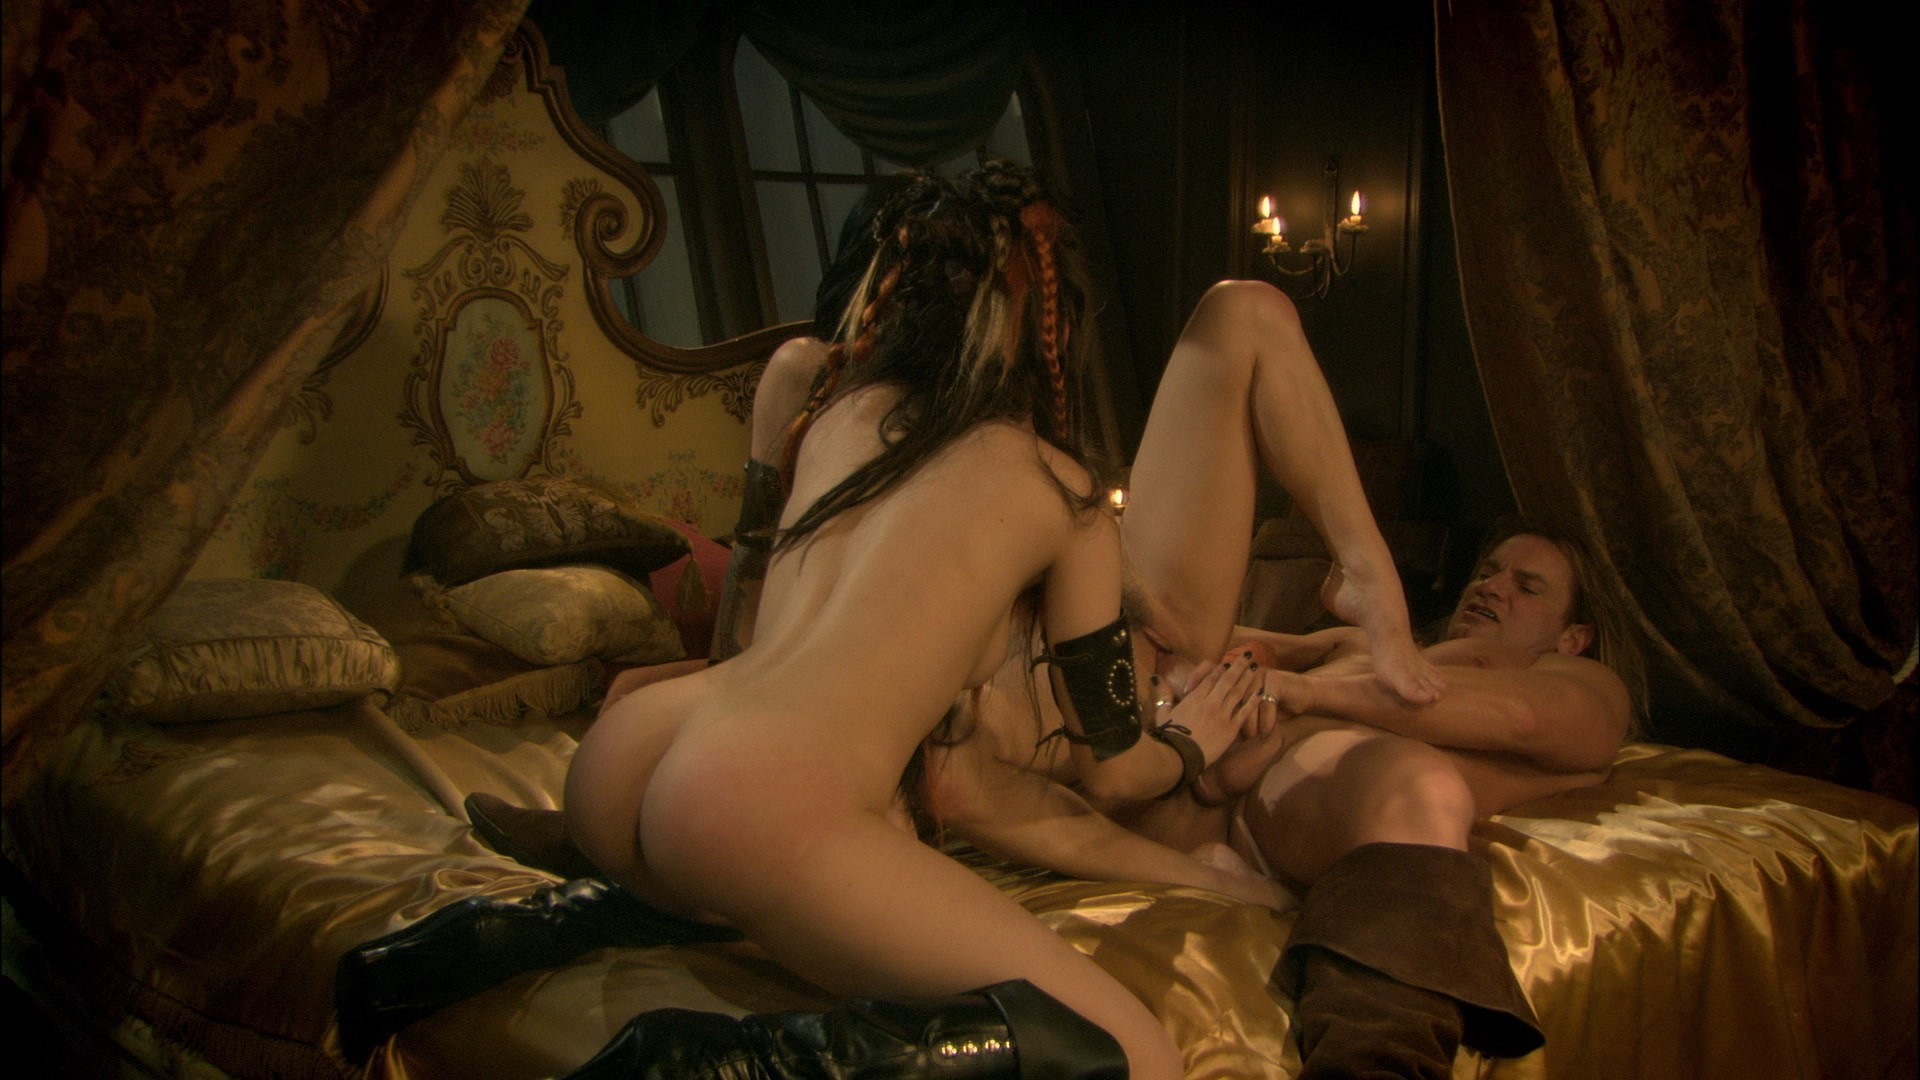 hot sexy women having sex with her pillow